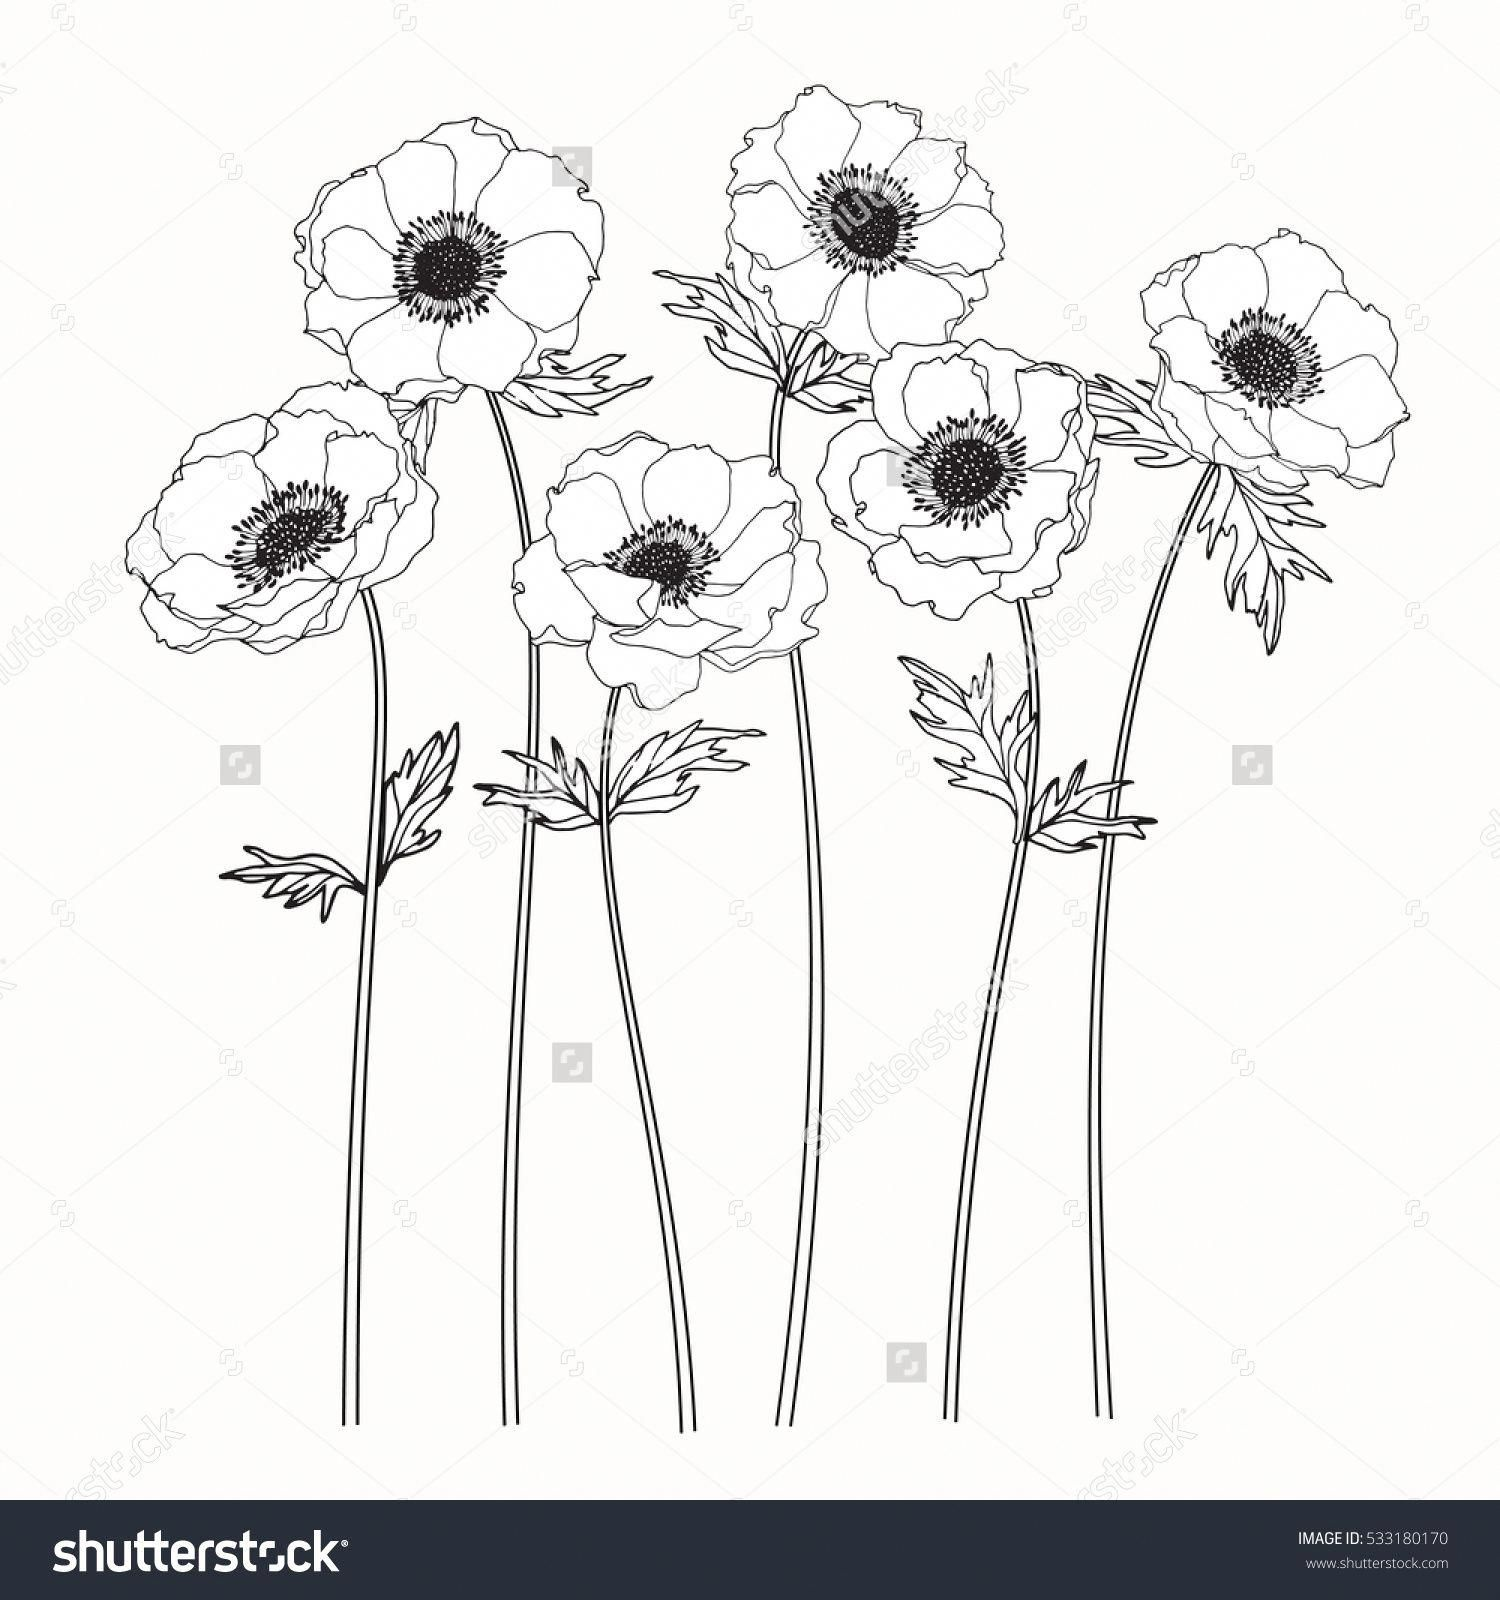 Drawing Anemone Flower On White Backgrounds Vector Flowersbackground Flower Drawing Anemone Tattoo Anemone Flower